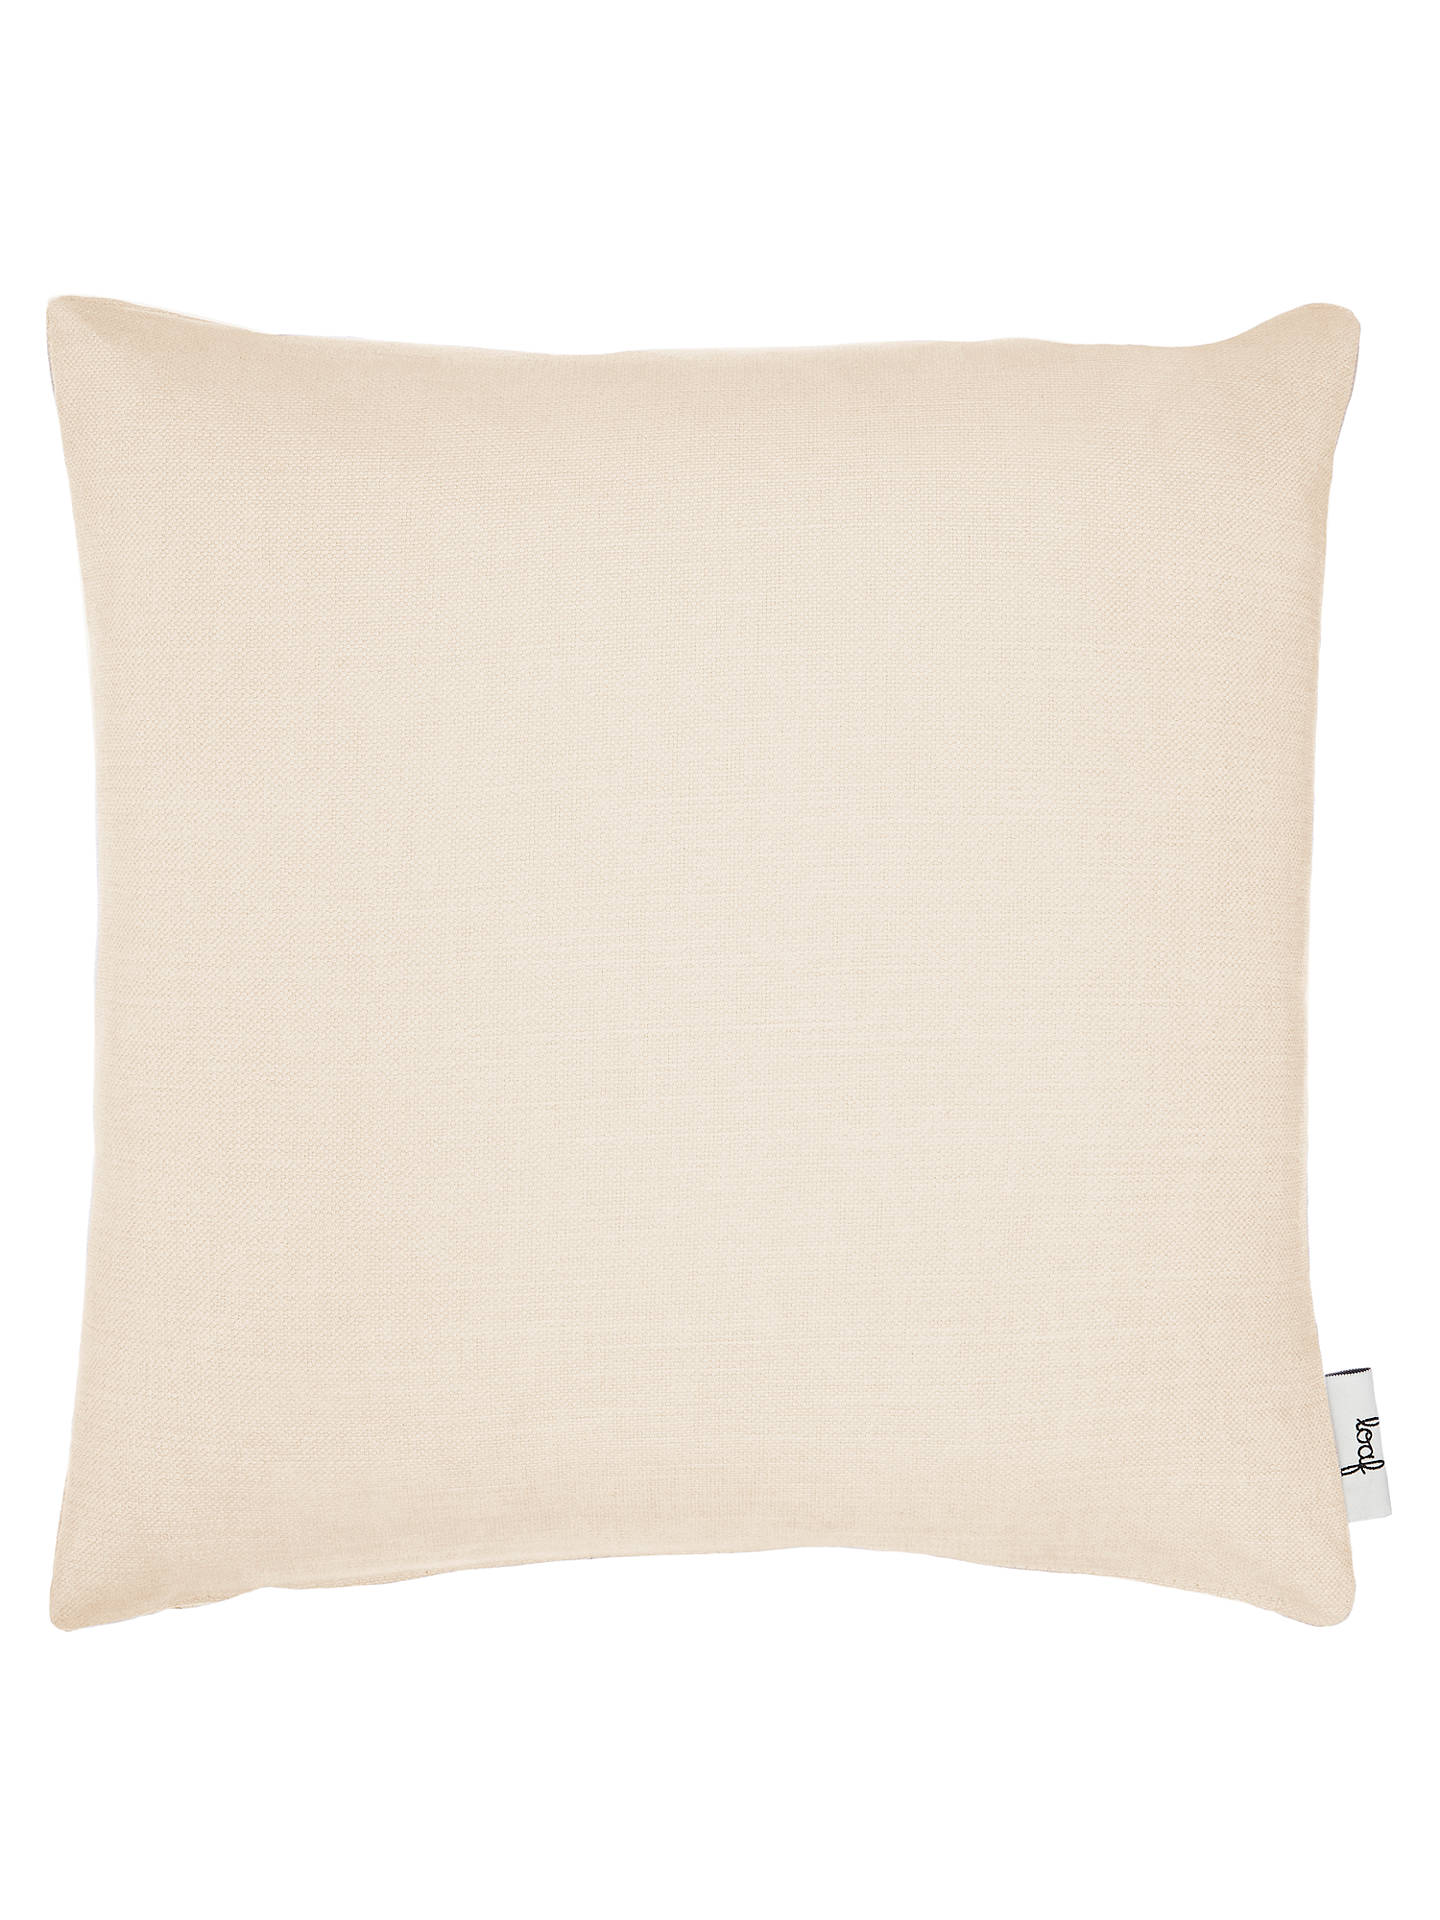 BuySquare Scatter Cushion by Loaf at John Lewis, Clever Linen Pale Rope Online at johnlewis.com